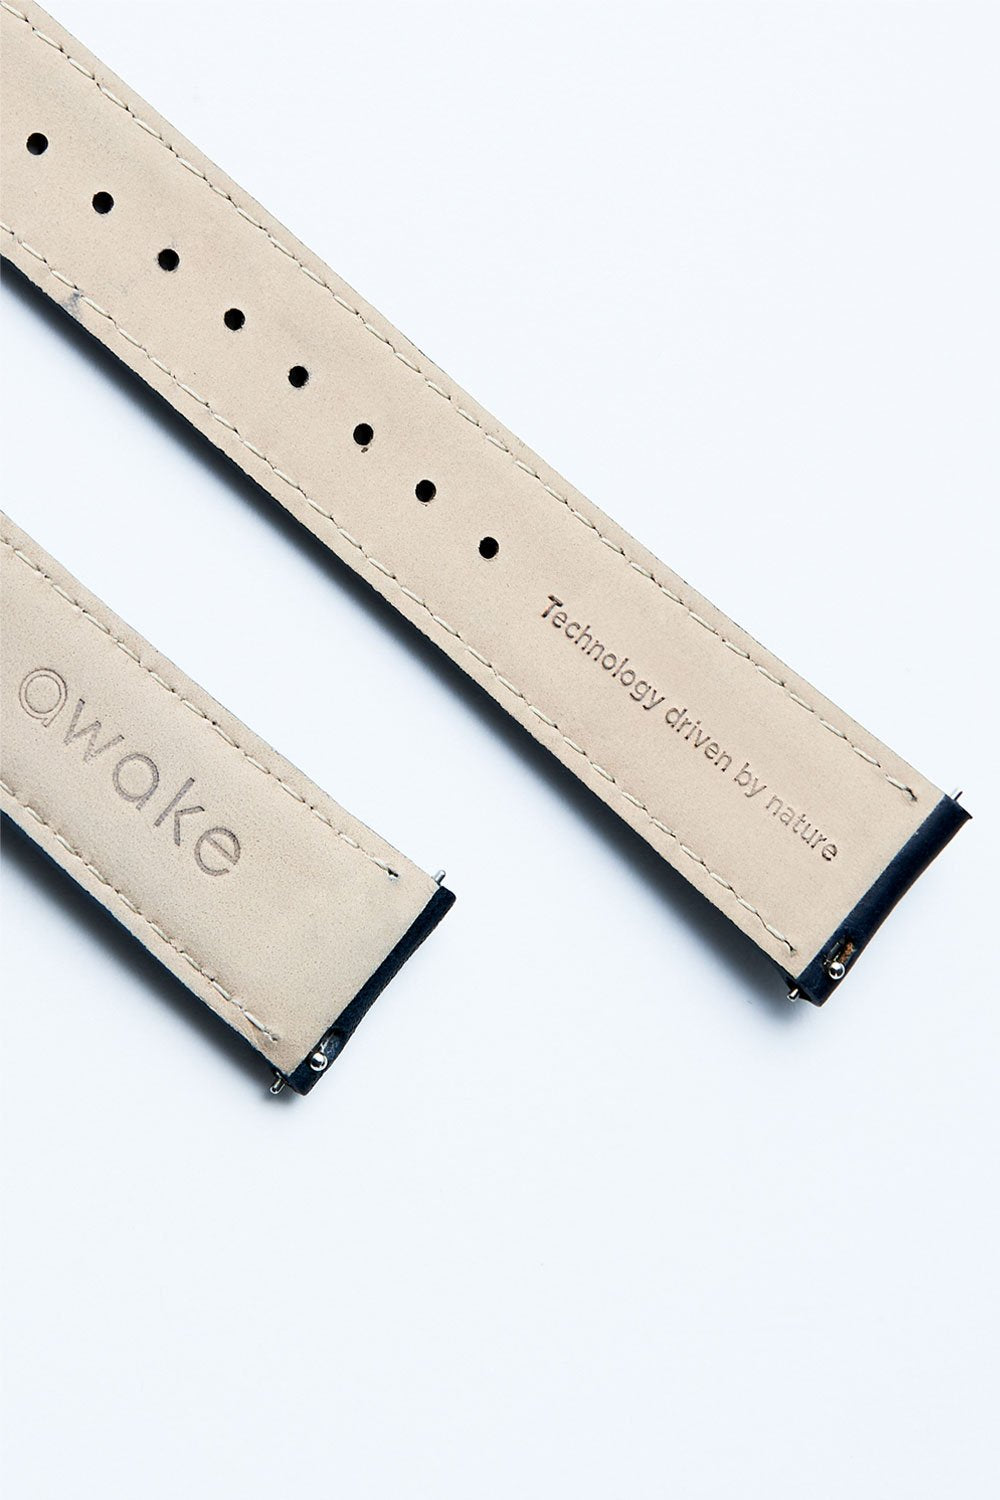 LEATHER STRAP BLUE